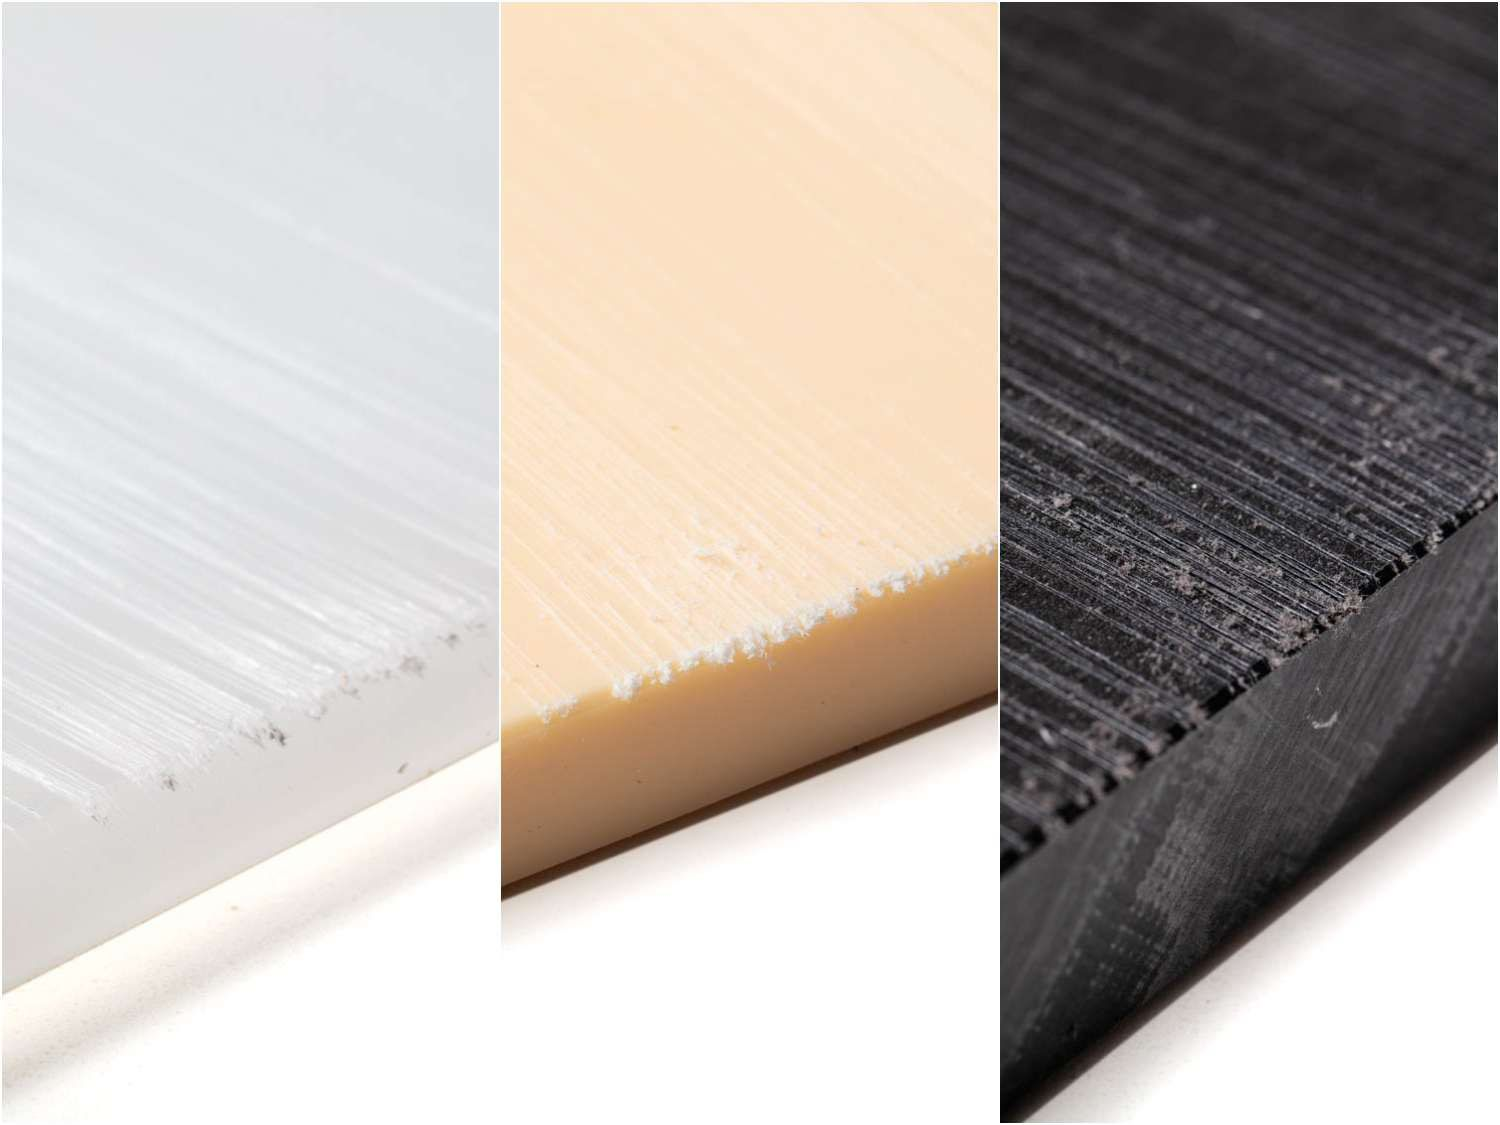 Which plastic cutting board material is most durable? This composite shot shows the knife damage to three examples.